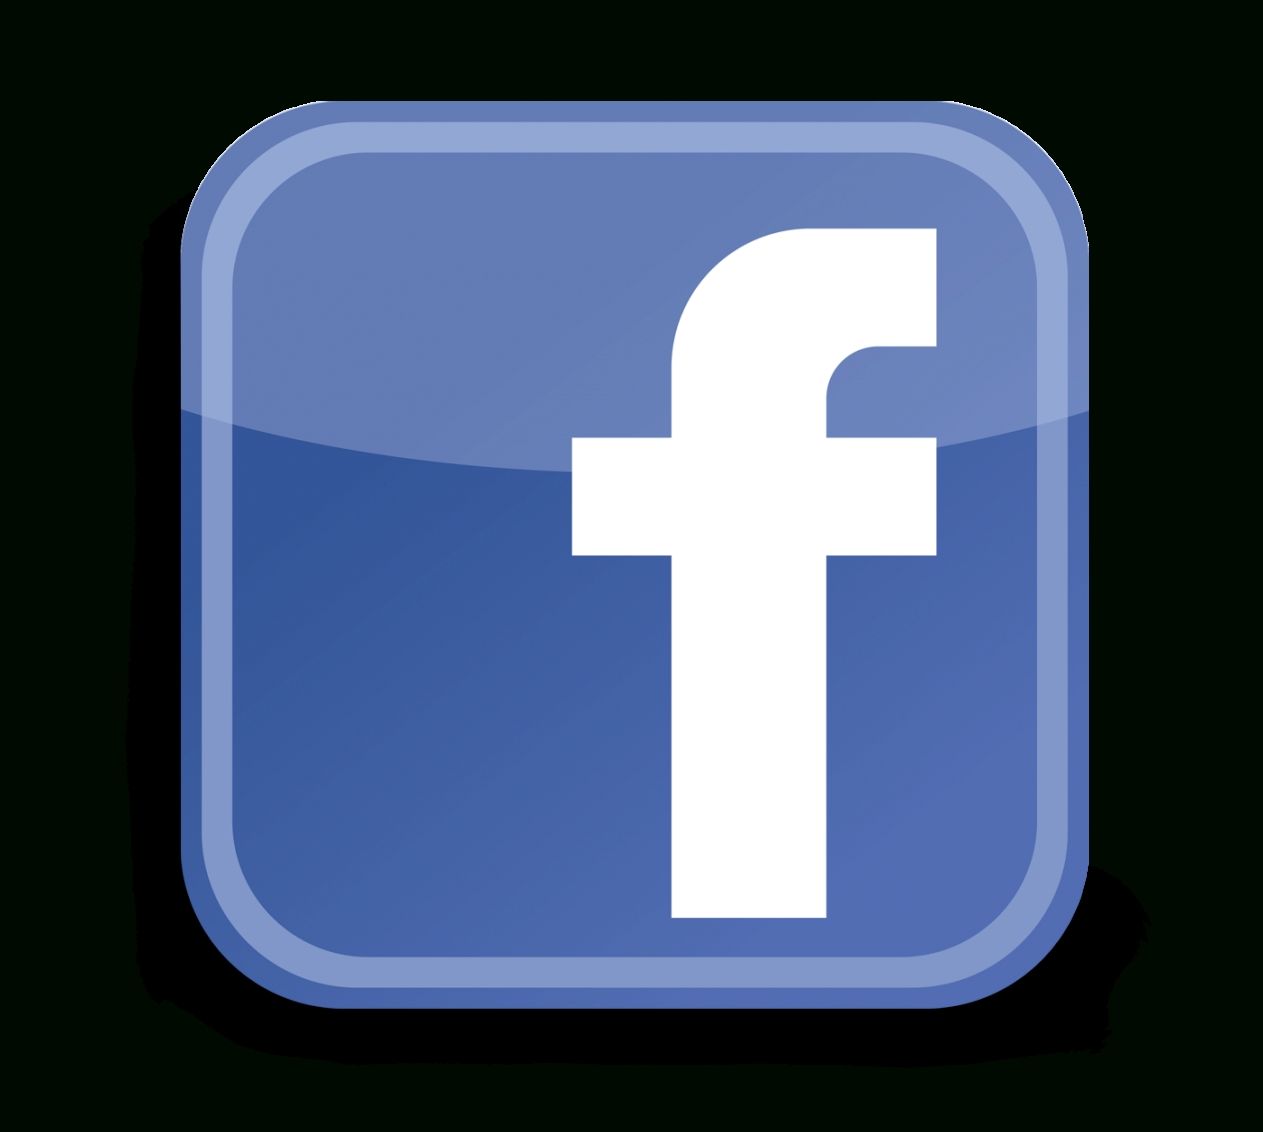 Facebook Logo Png u2013 Free Icons And Png Backgrounds4 - Facebook HD PNG